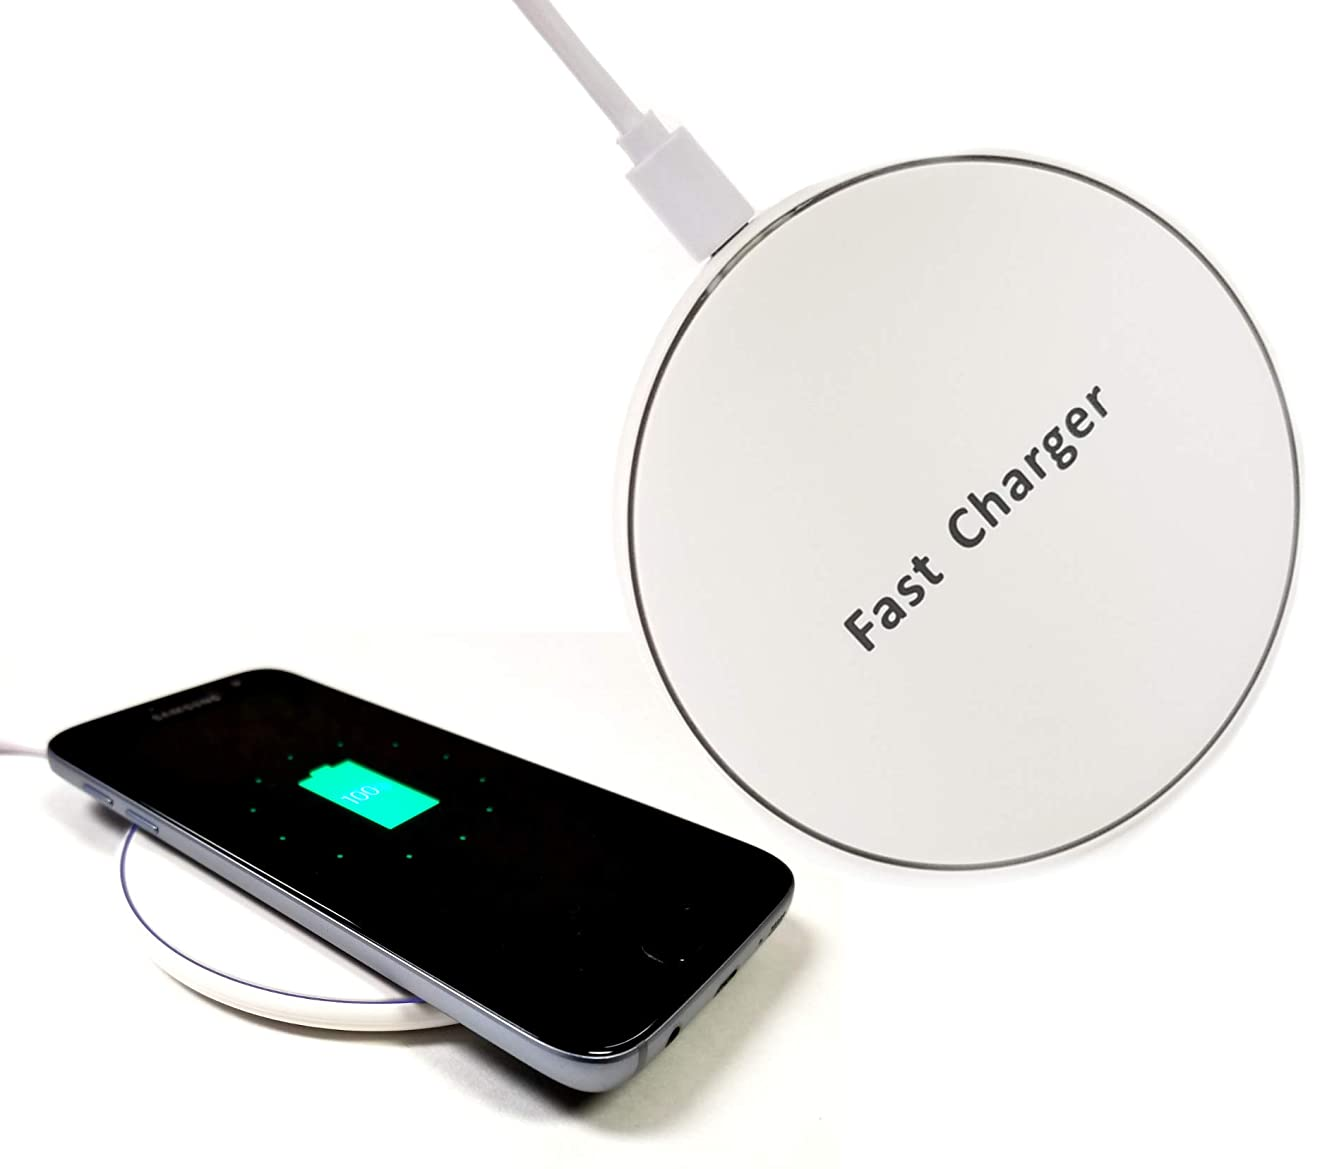 Certified Qi Charger - 10W Fast Wireless Charging Compatible with Most Qi Standard Smartphones Especially iPhones, iPhone X, Samsung Galaxy S7 S8 S9 Plus & Qi Certified Receivers/adapters (White)